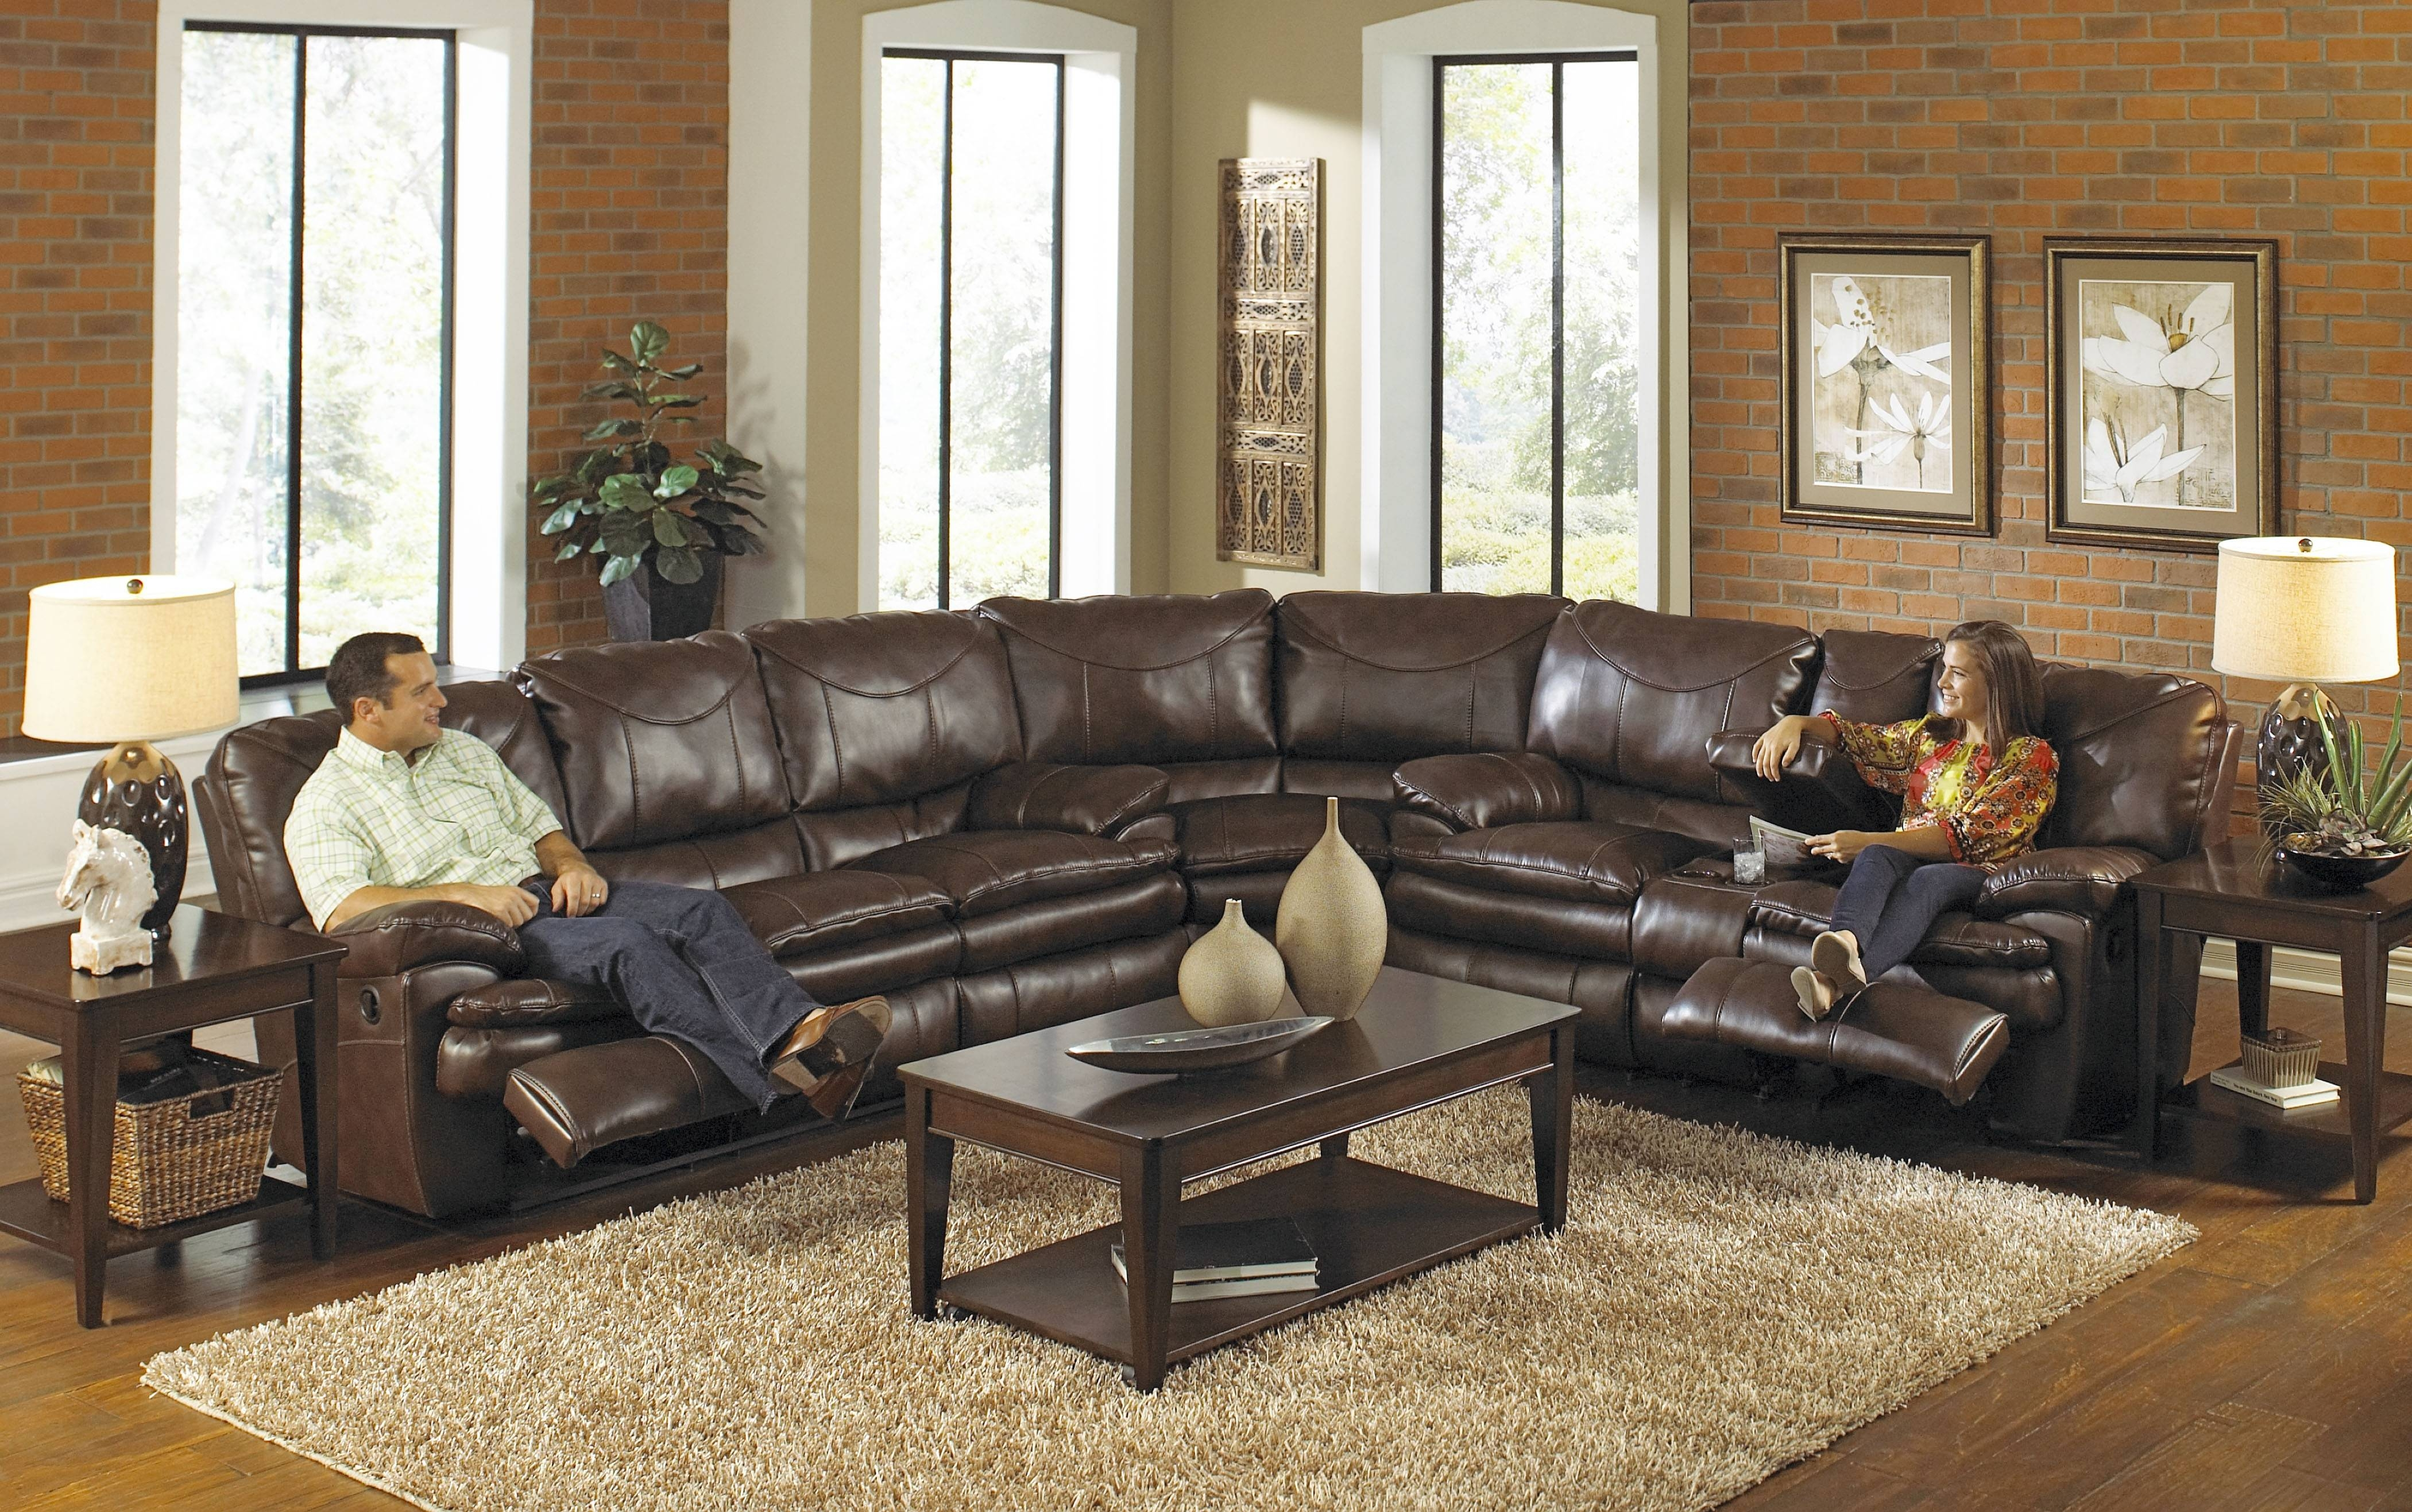 Ferrara Leather Recliner Sectional Sofaabbyson Living – Rs within Abbyson Living Charlotte Dark Brown Sectional Sofa And Ottoman (Image 15 of 30)